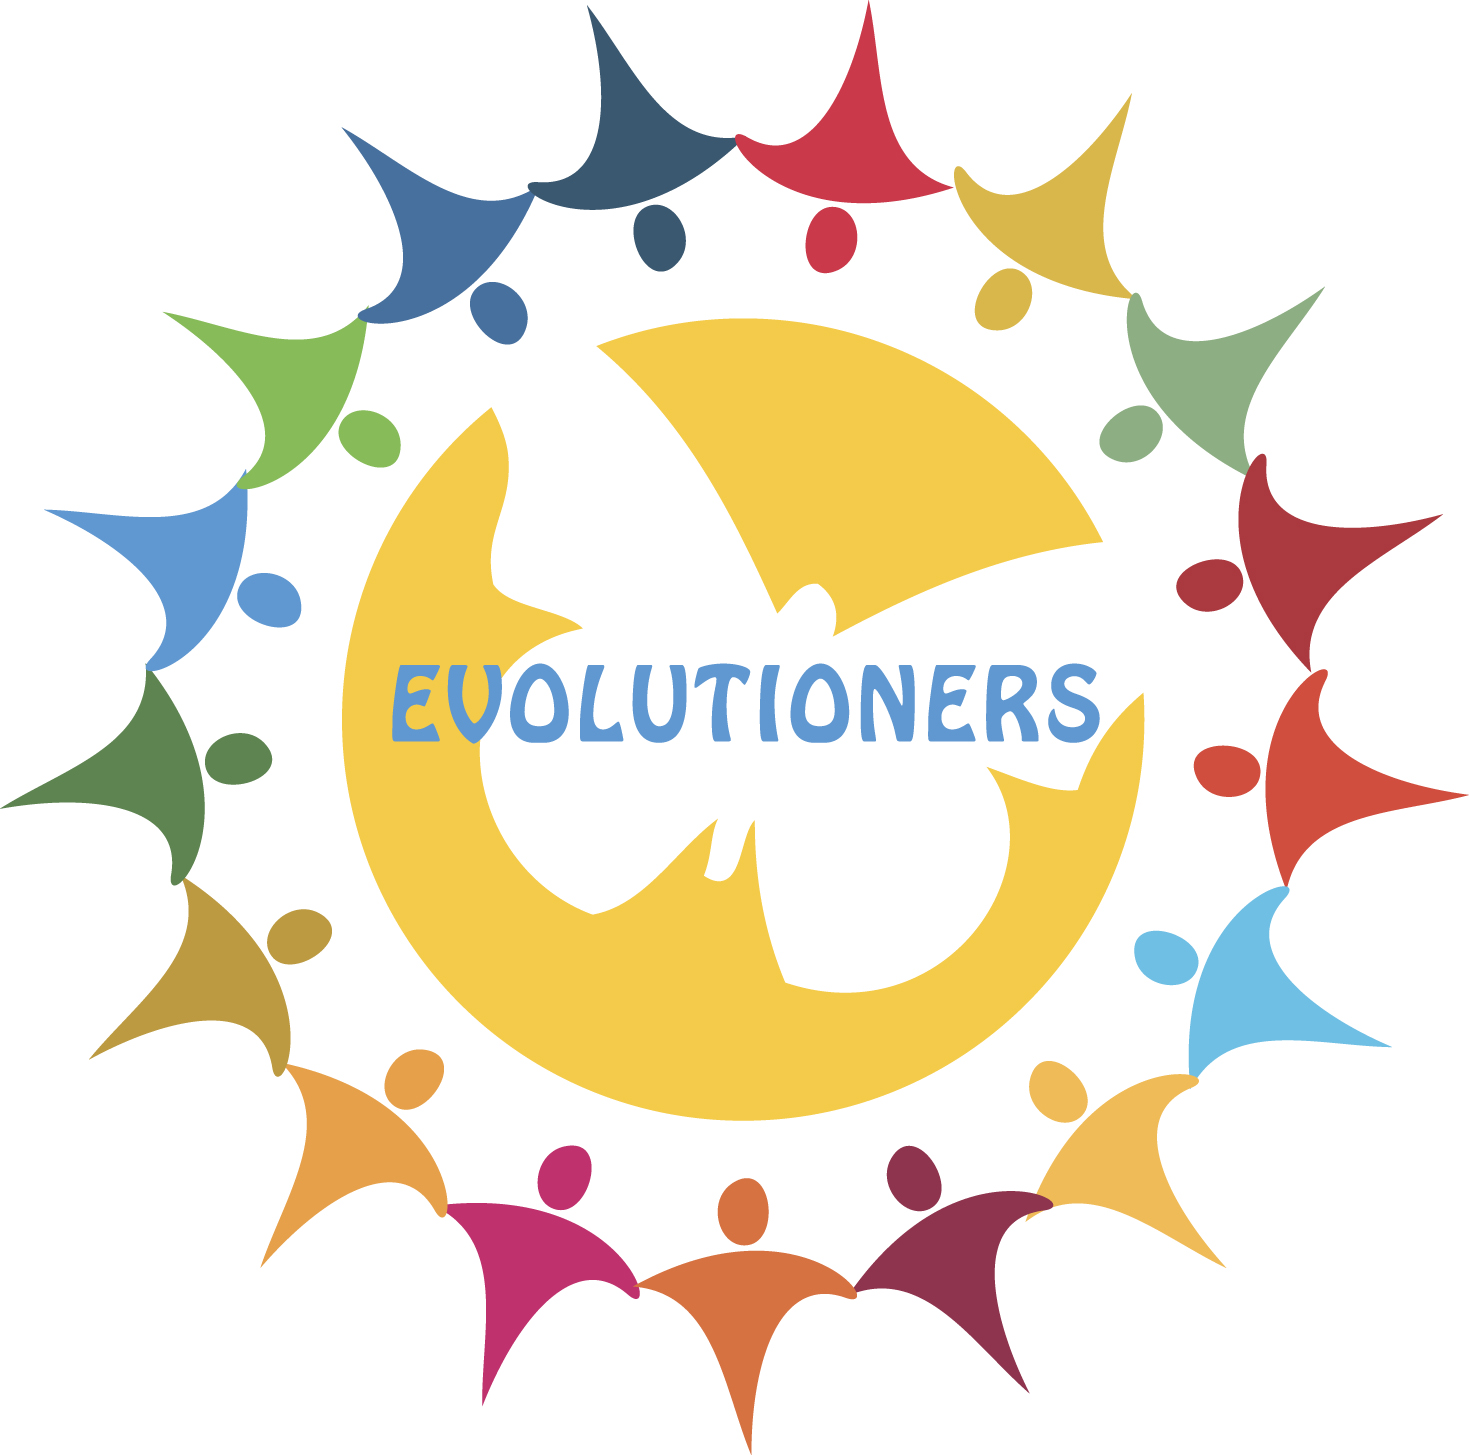 EVOLUTIONERS NETWORK